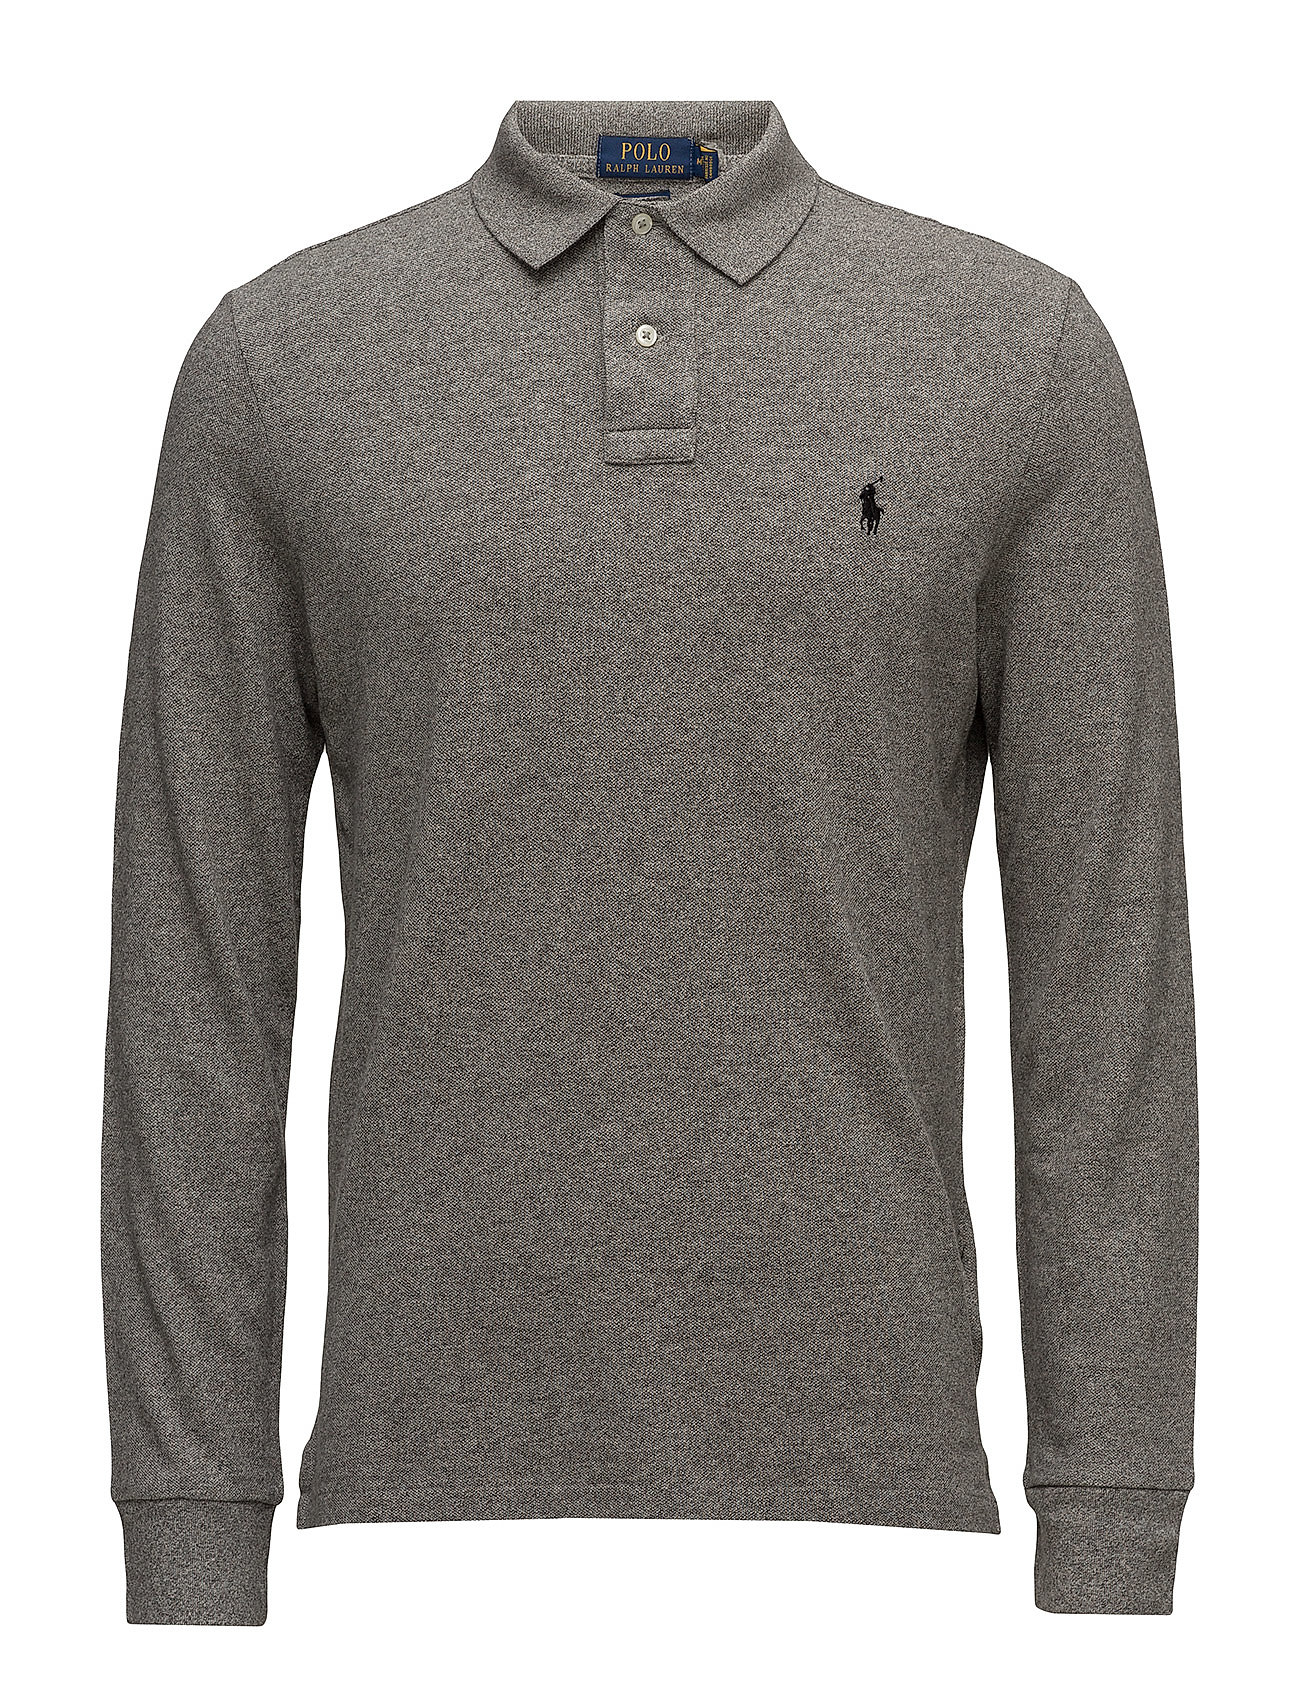 Polo Ralph Lauren Classic Fit Long-Sleeve Polo - CANTERBURY HEATHE